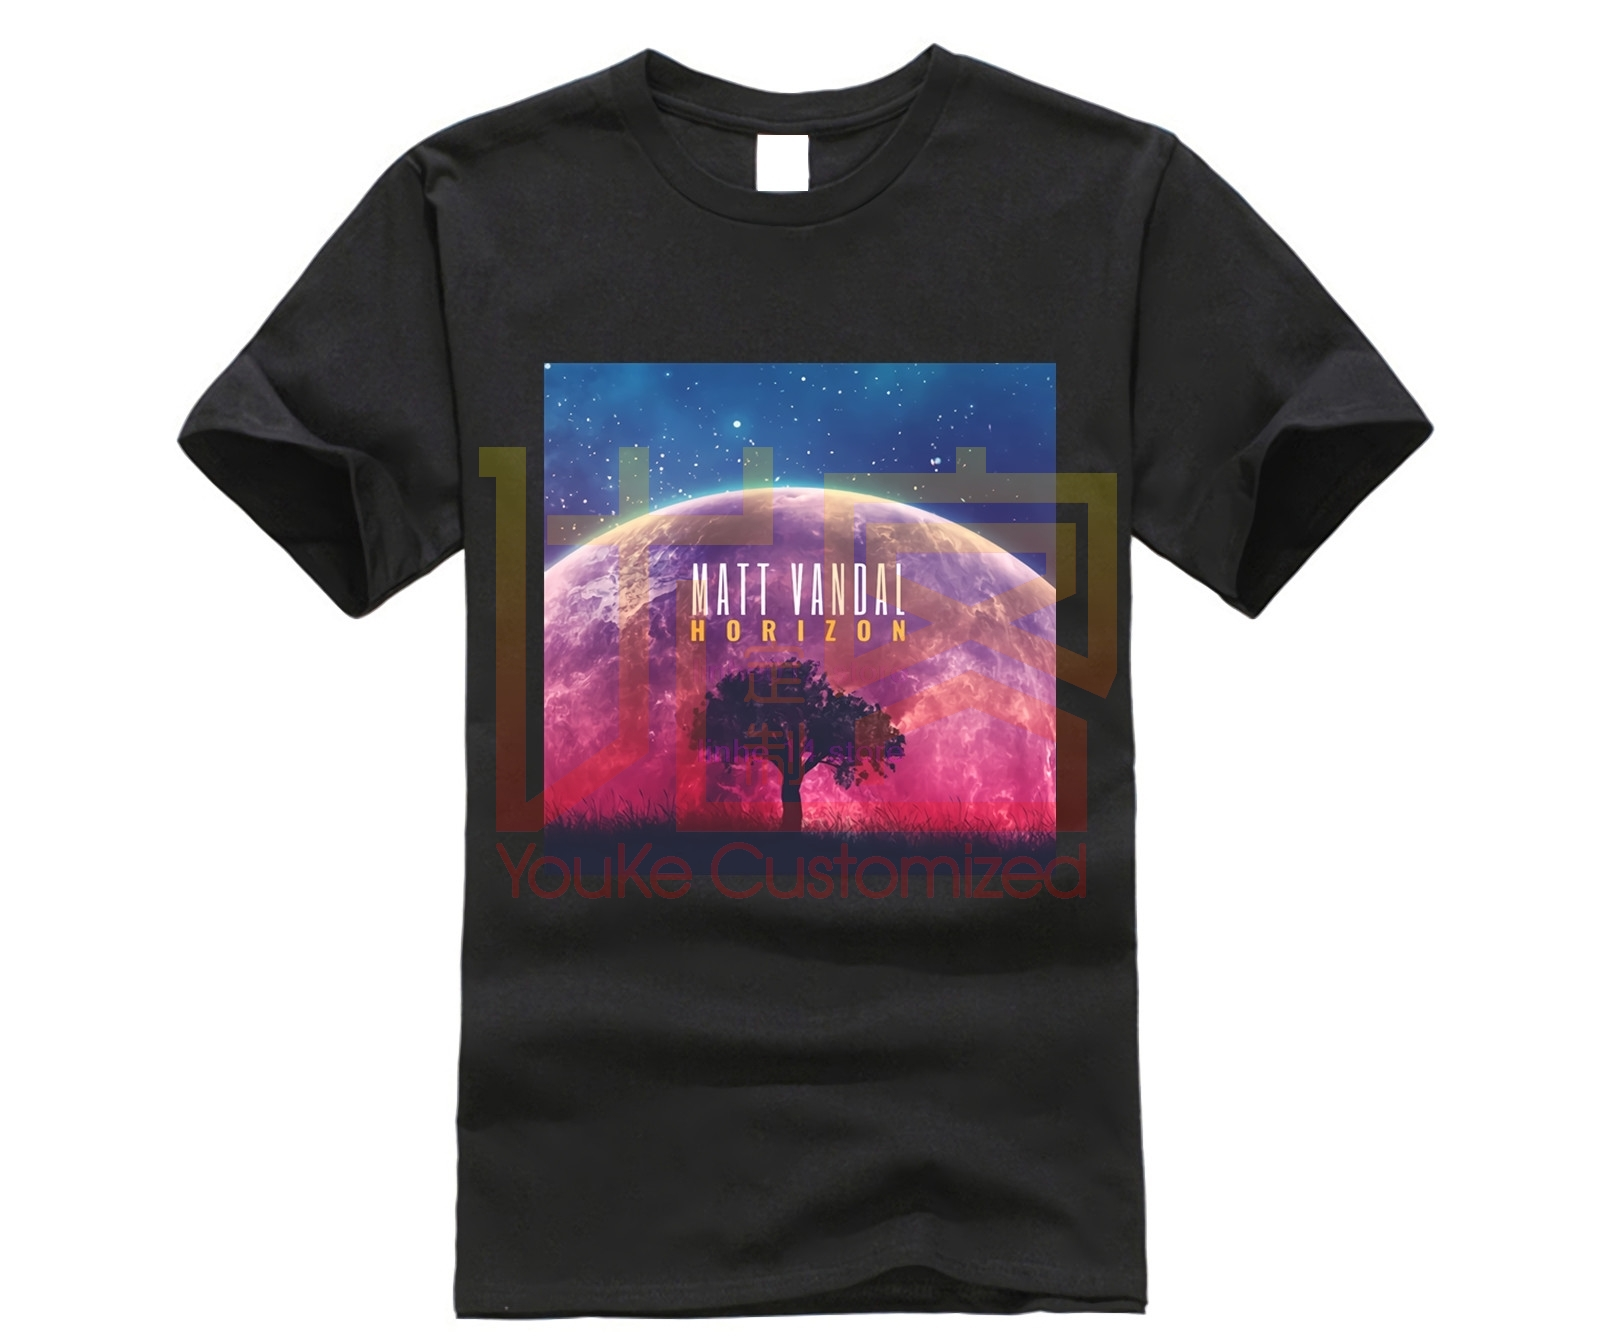 Matt Vandal Horizon Album Cover Jazz t-shirt Printed t-shirt Crew Neck Short Sleeve Casual t-shirt image